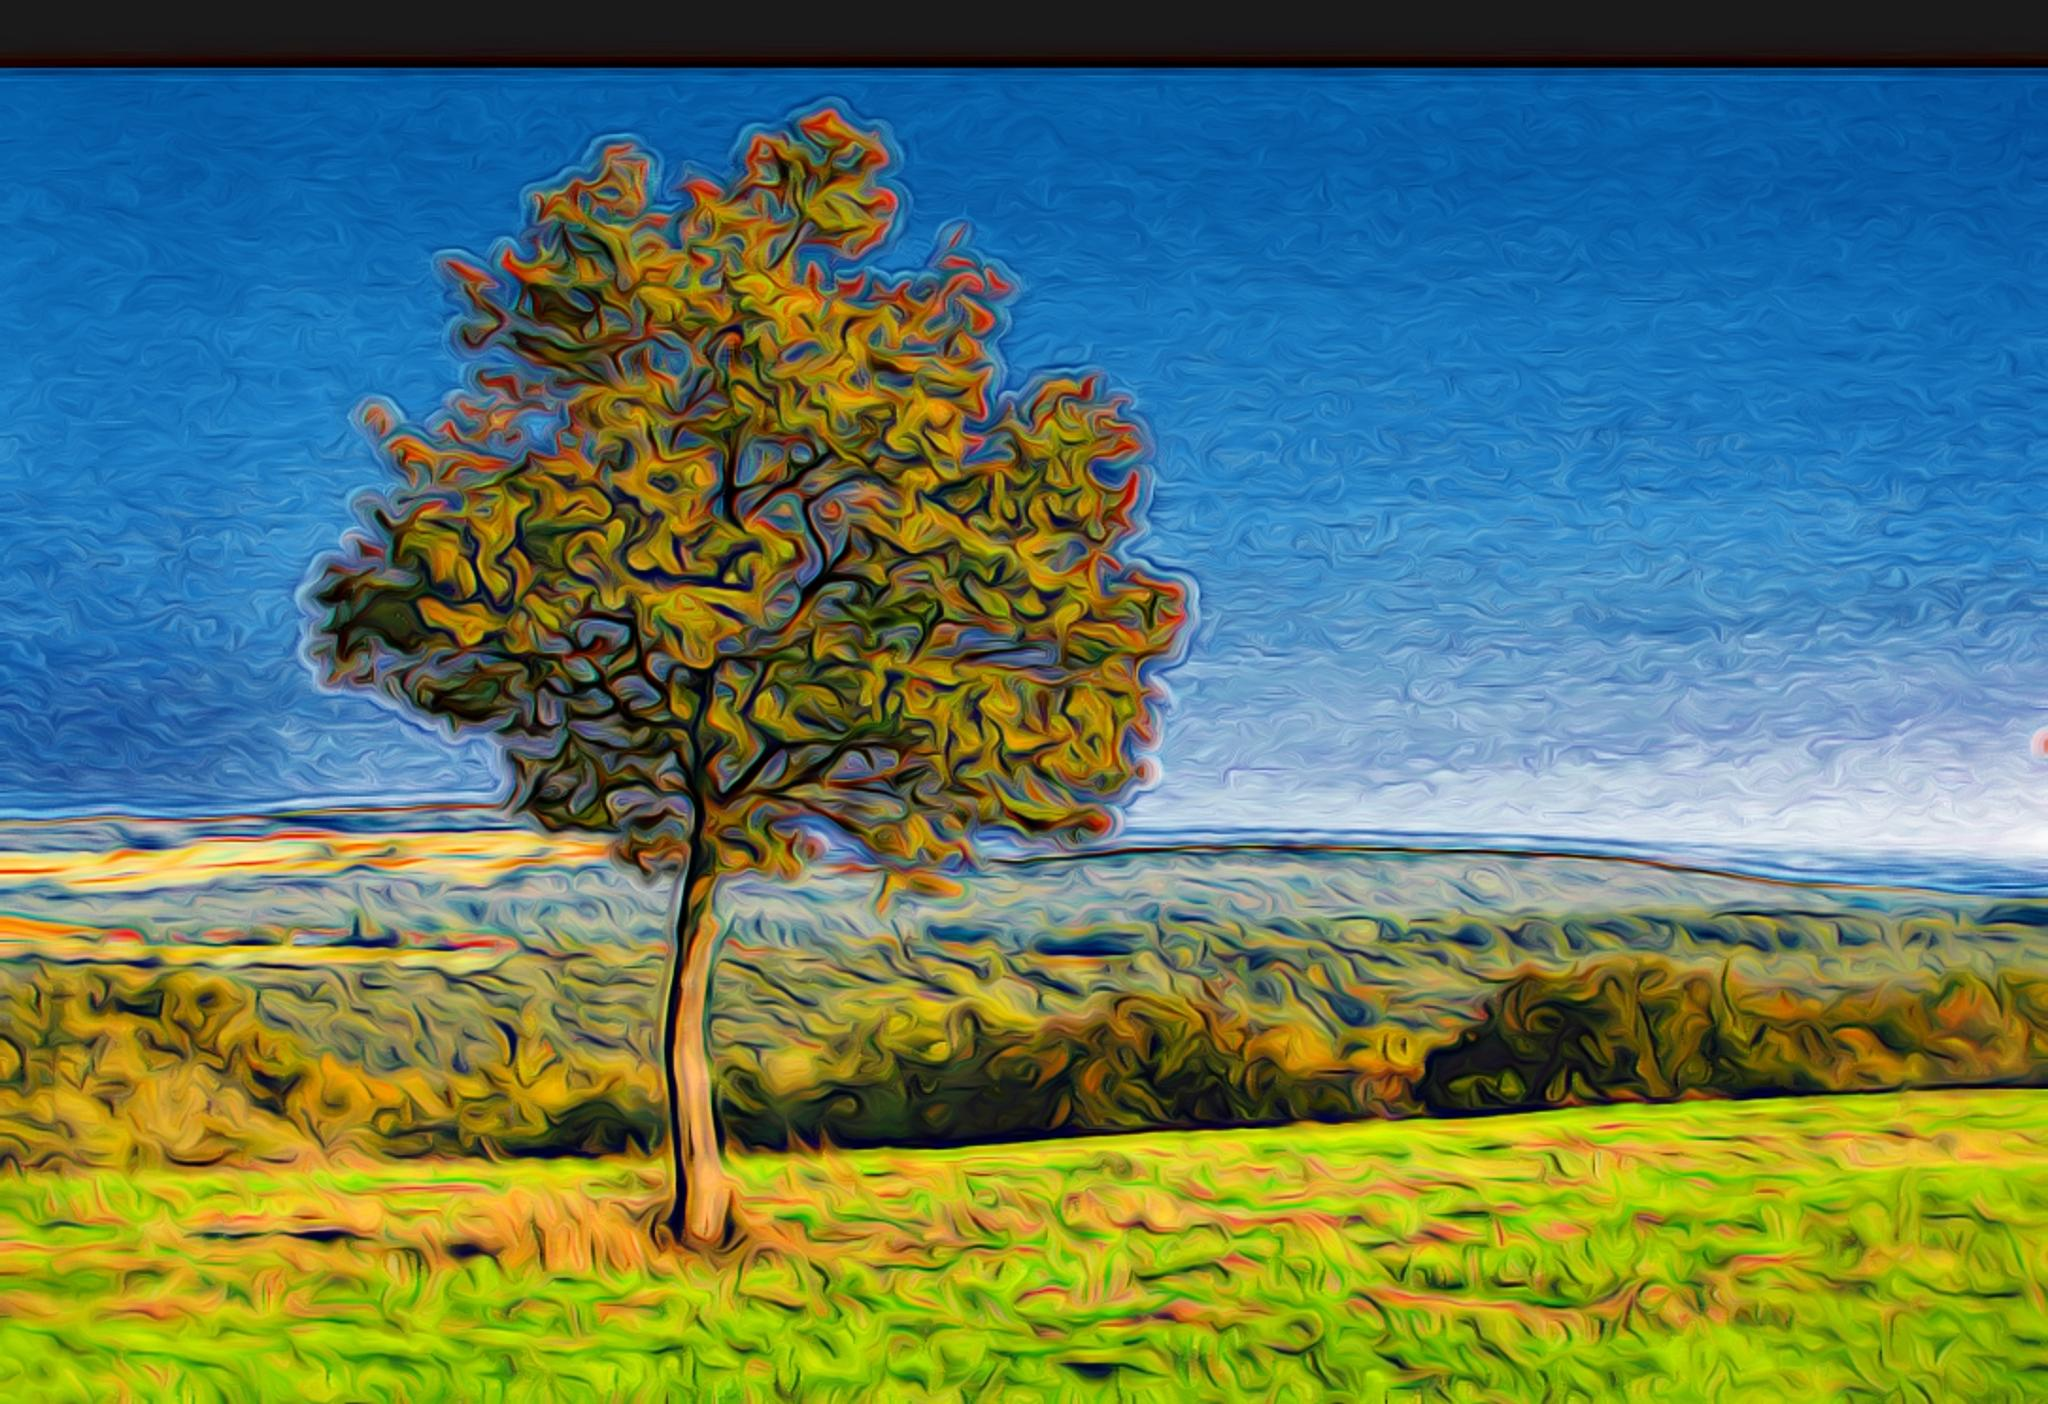 Lonely Tree by stephen.harding.735